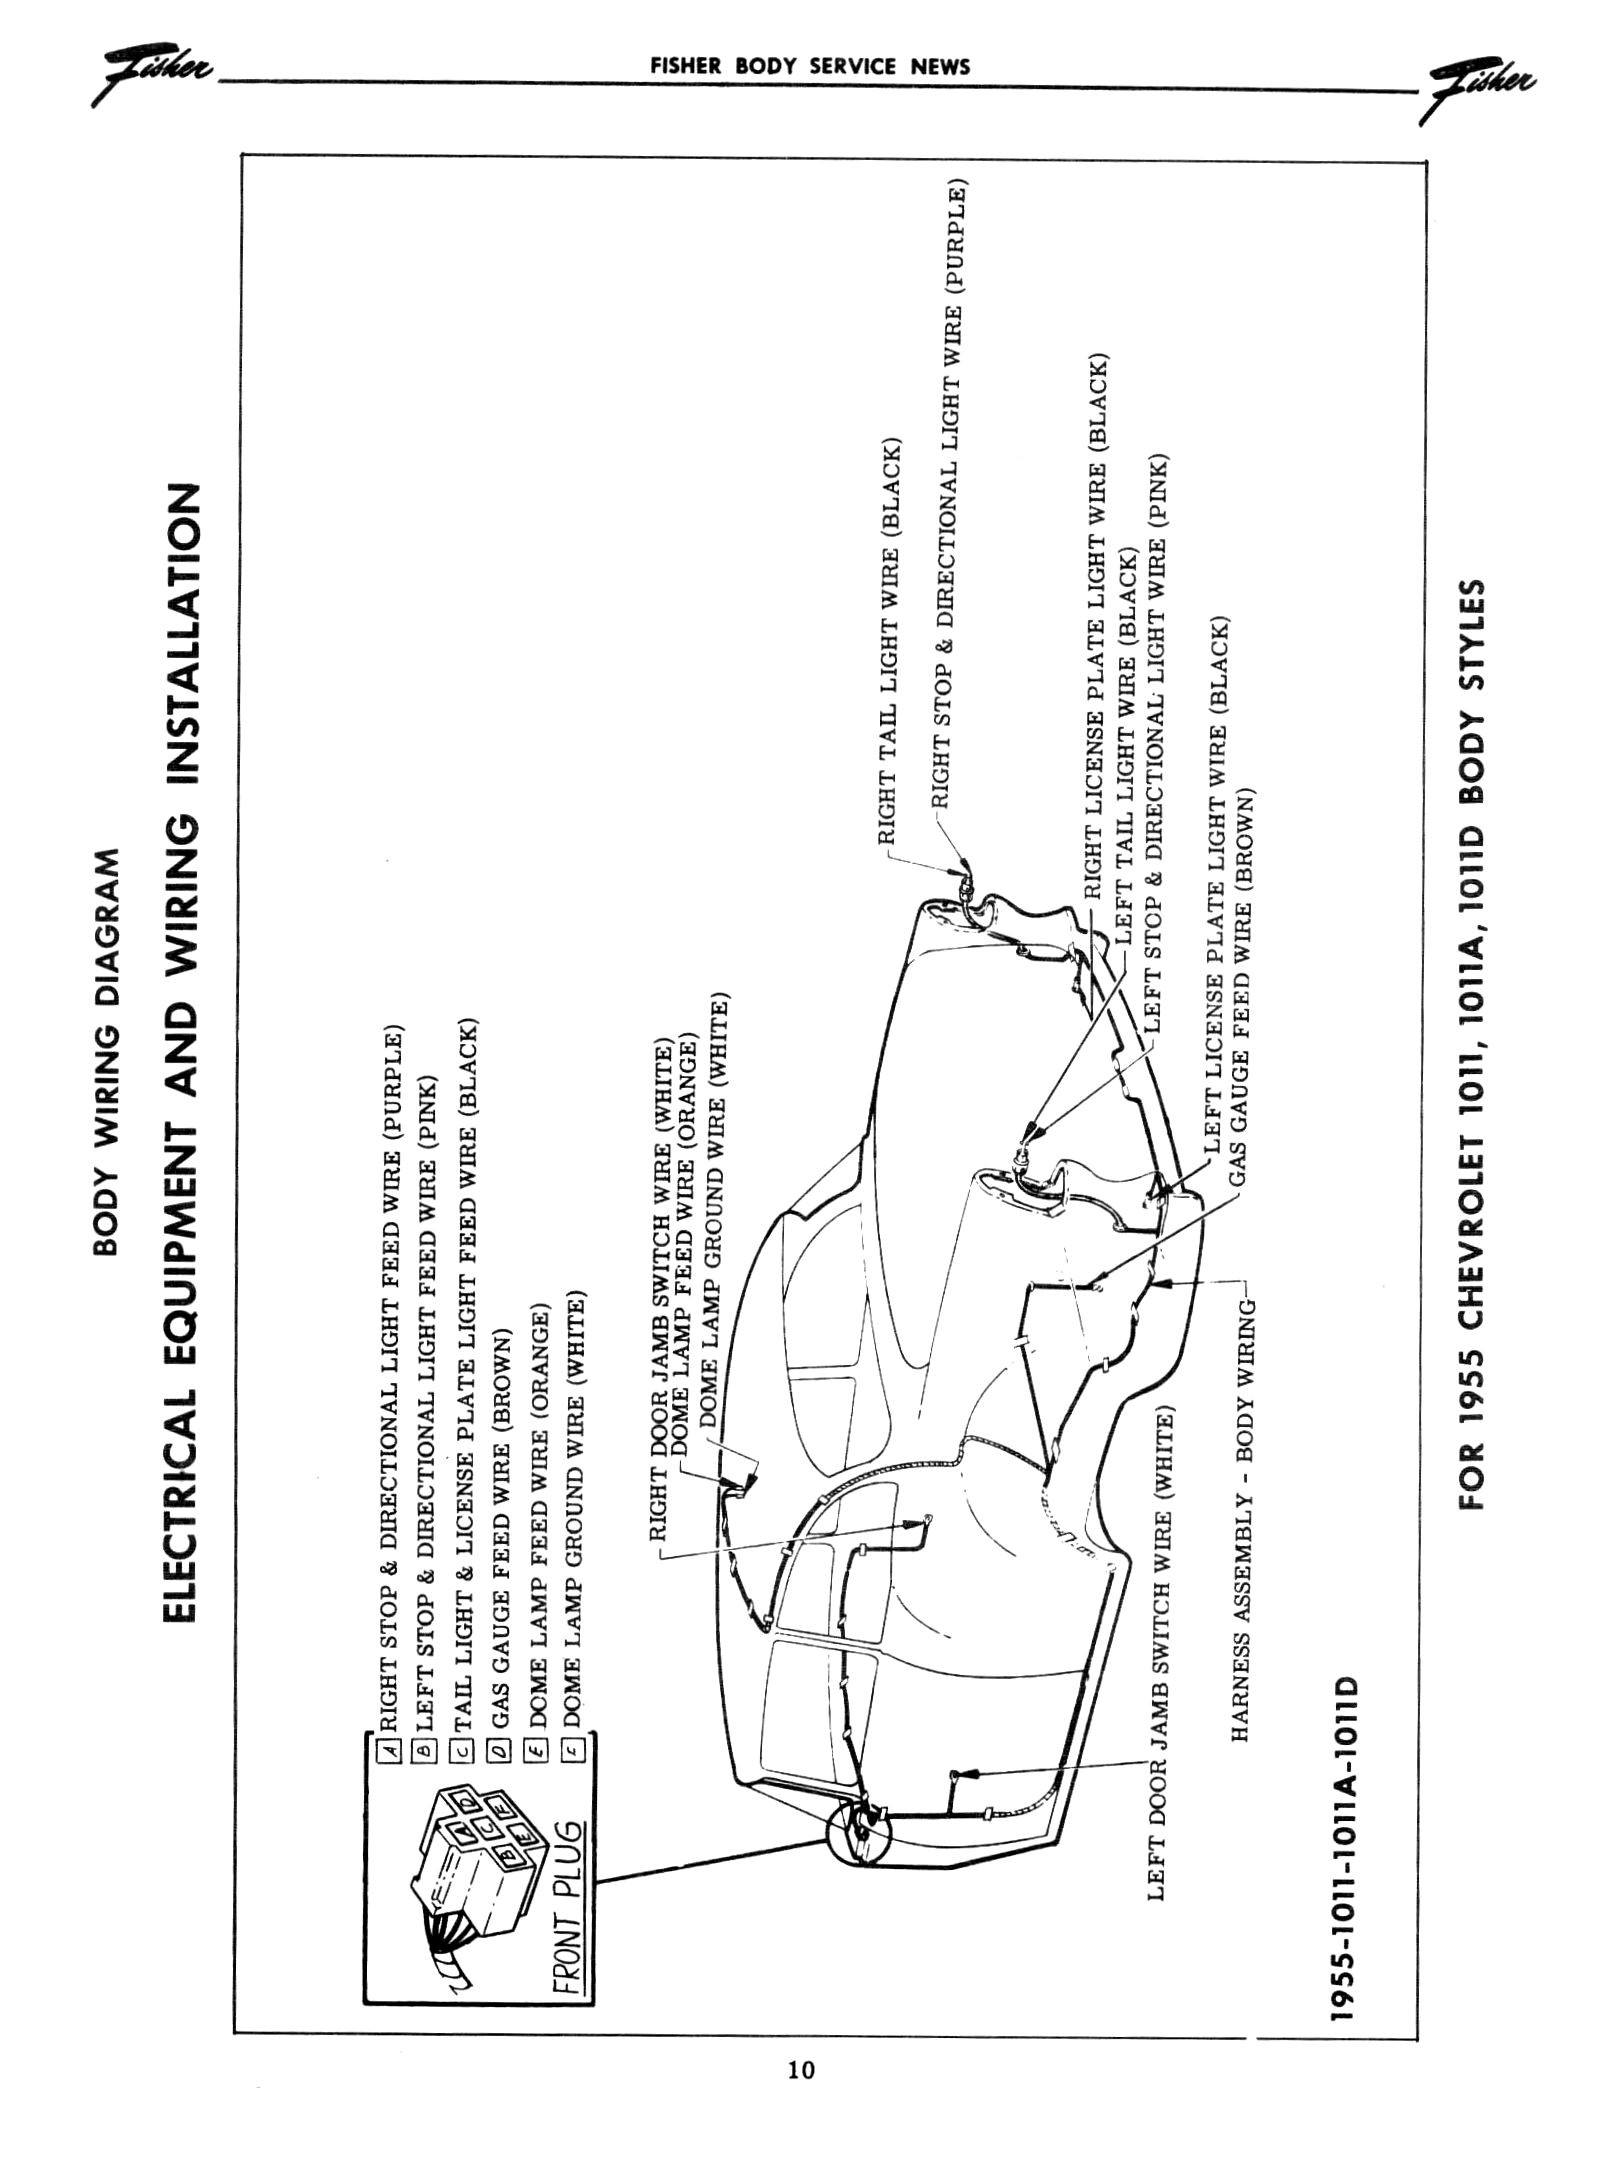 WRG-1822] 1951 Chevy Fleetline Wiring Diagram on